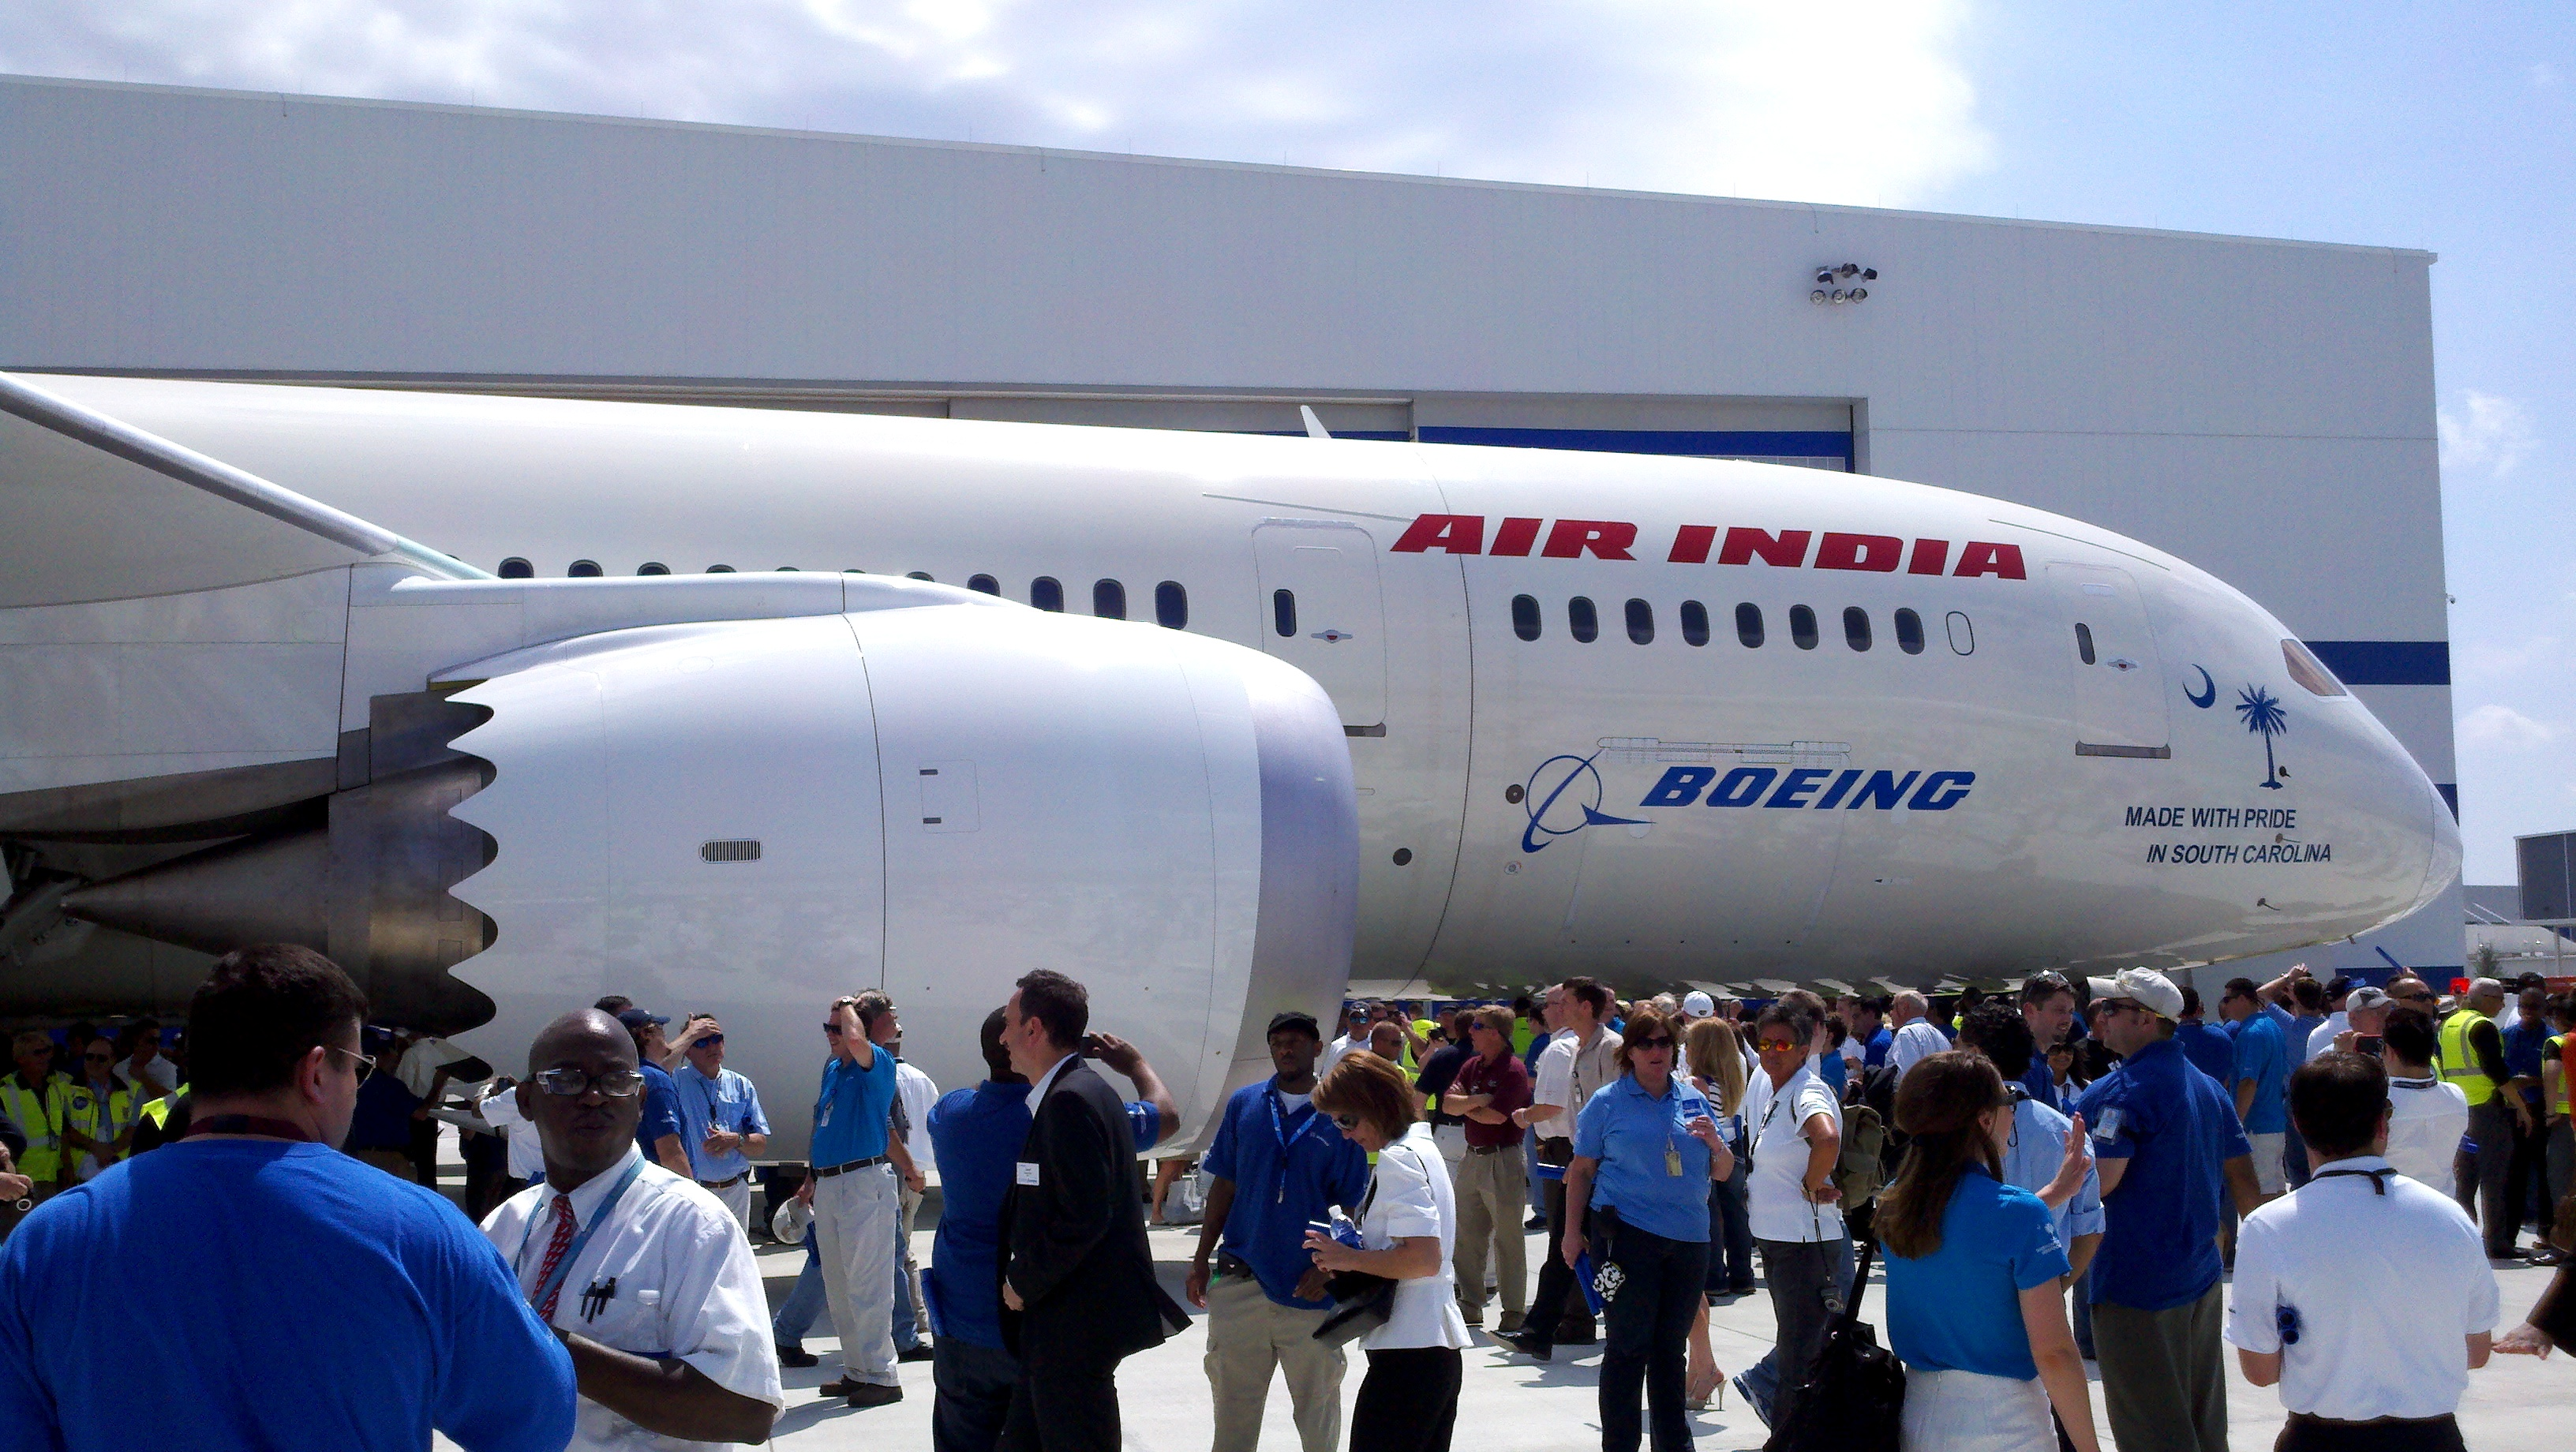 North Charleston-made Boeing 787